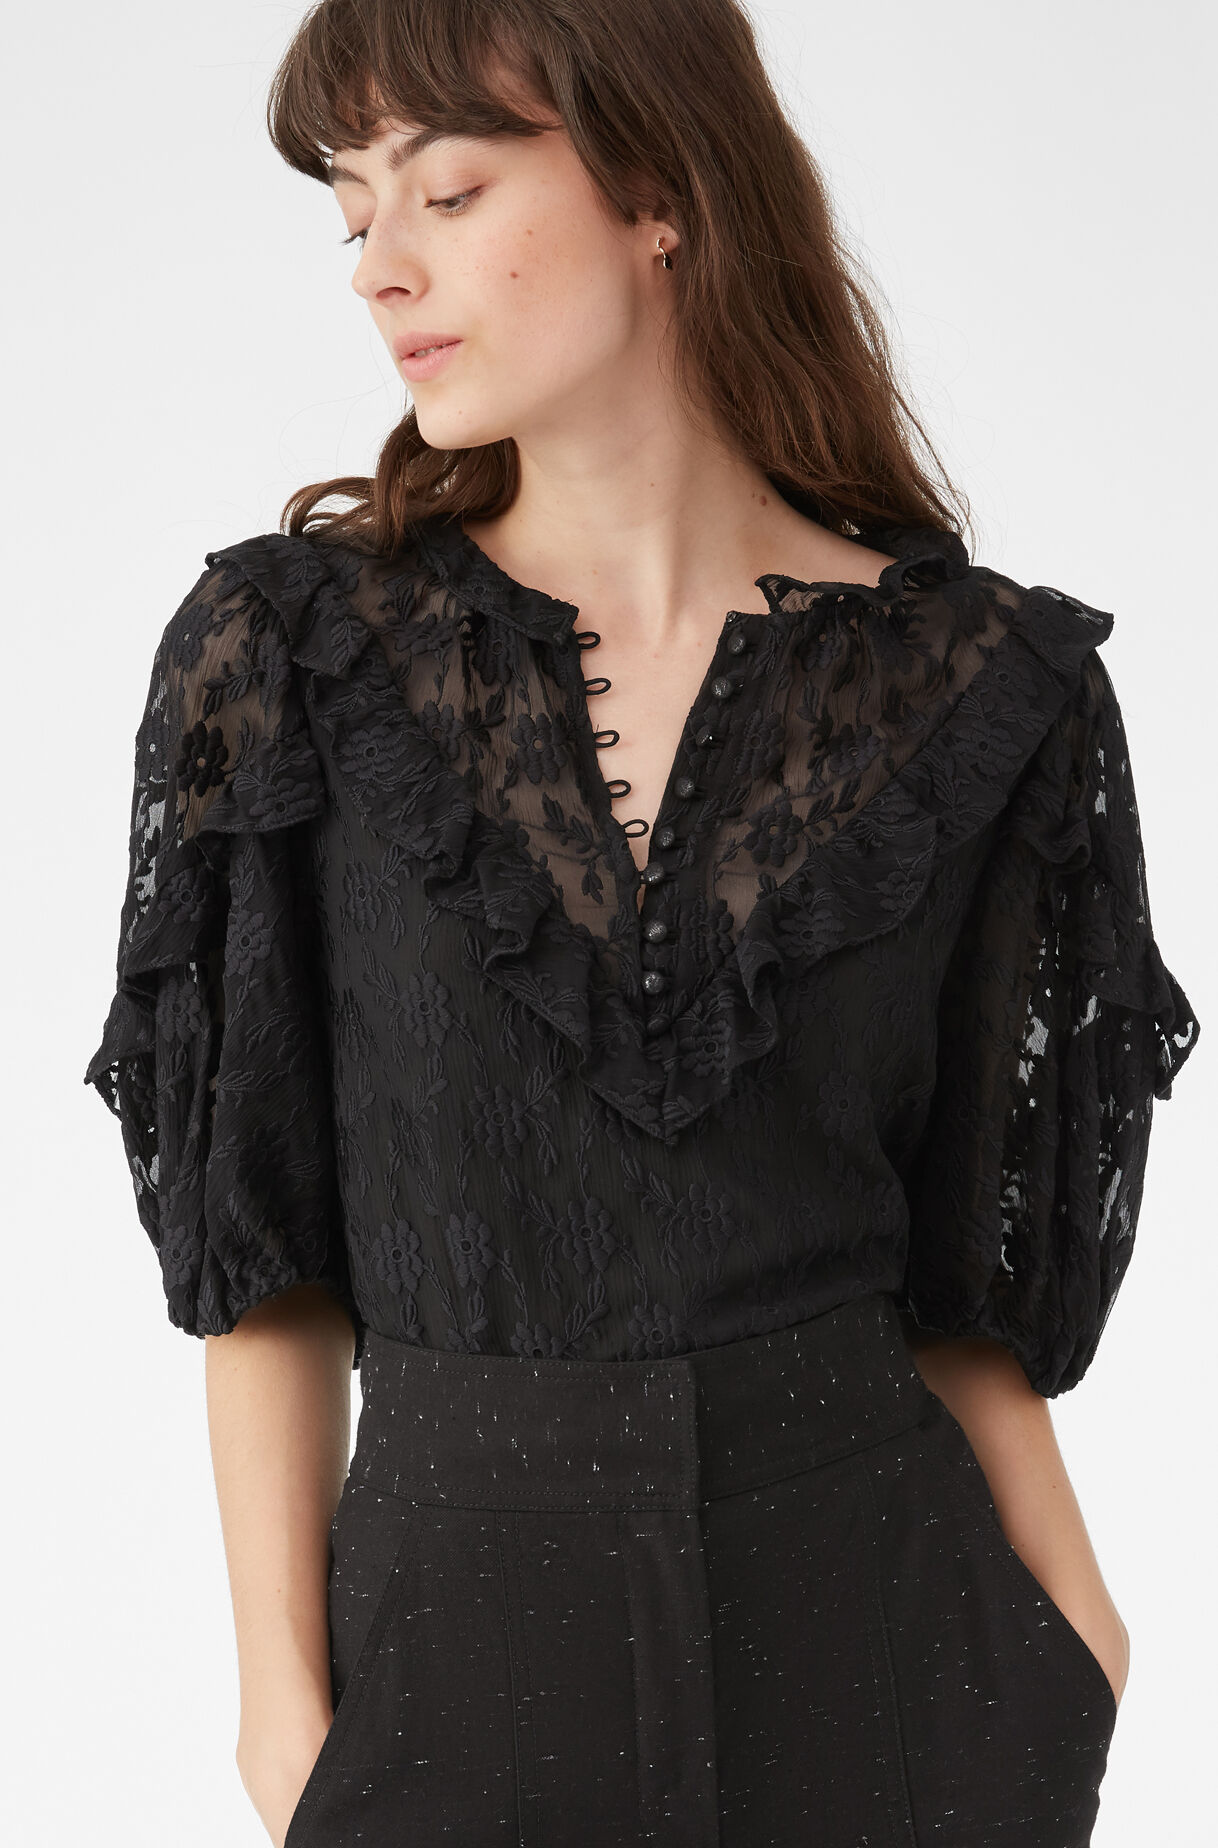 Floral Vine Embroidered Ruffle Top, , large